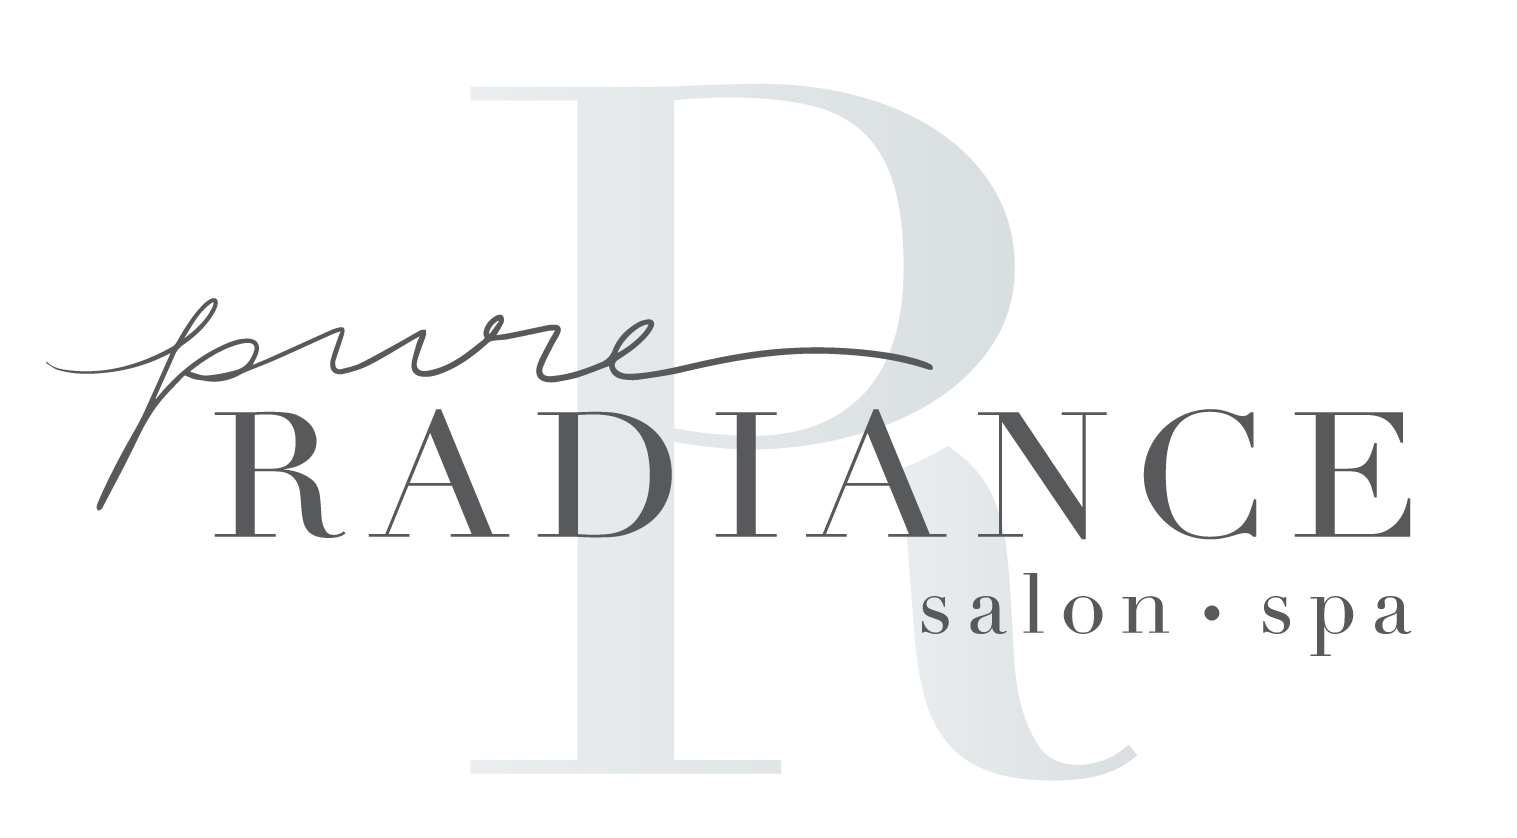 Pure Radiance Salon & Spa | Lawrenceburg, KY